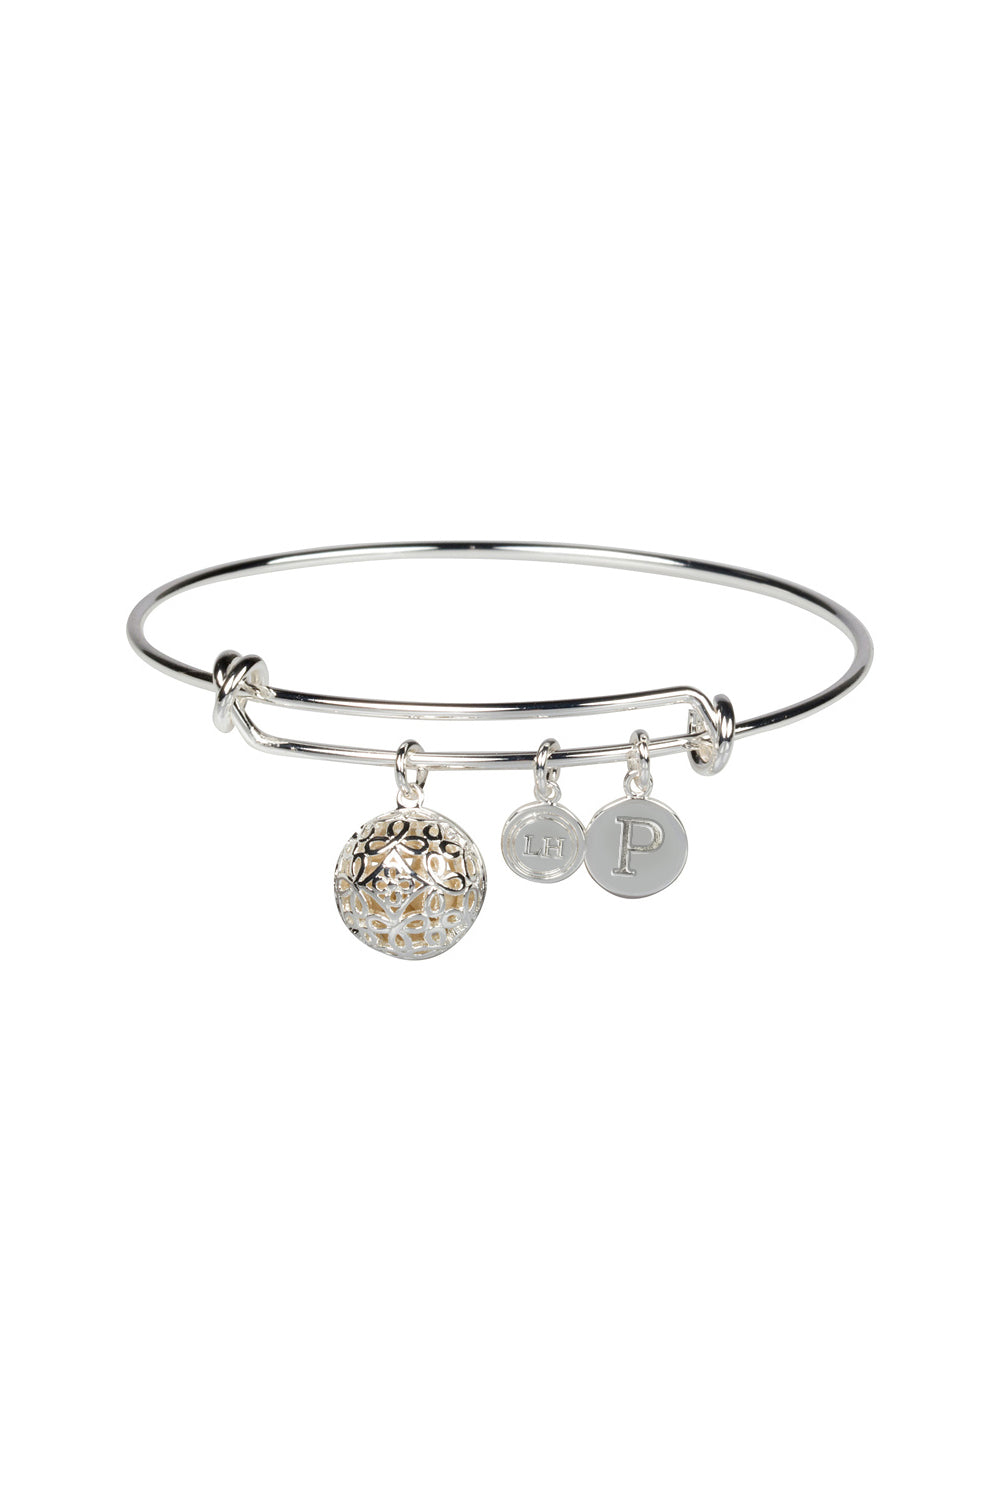 """P"" Initial Fragrance Bangle with Silver Tone Charm"